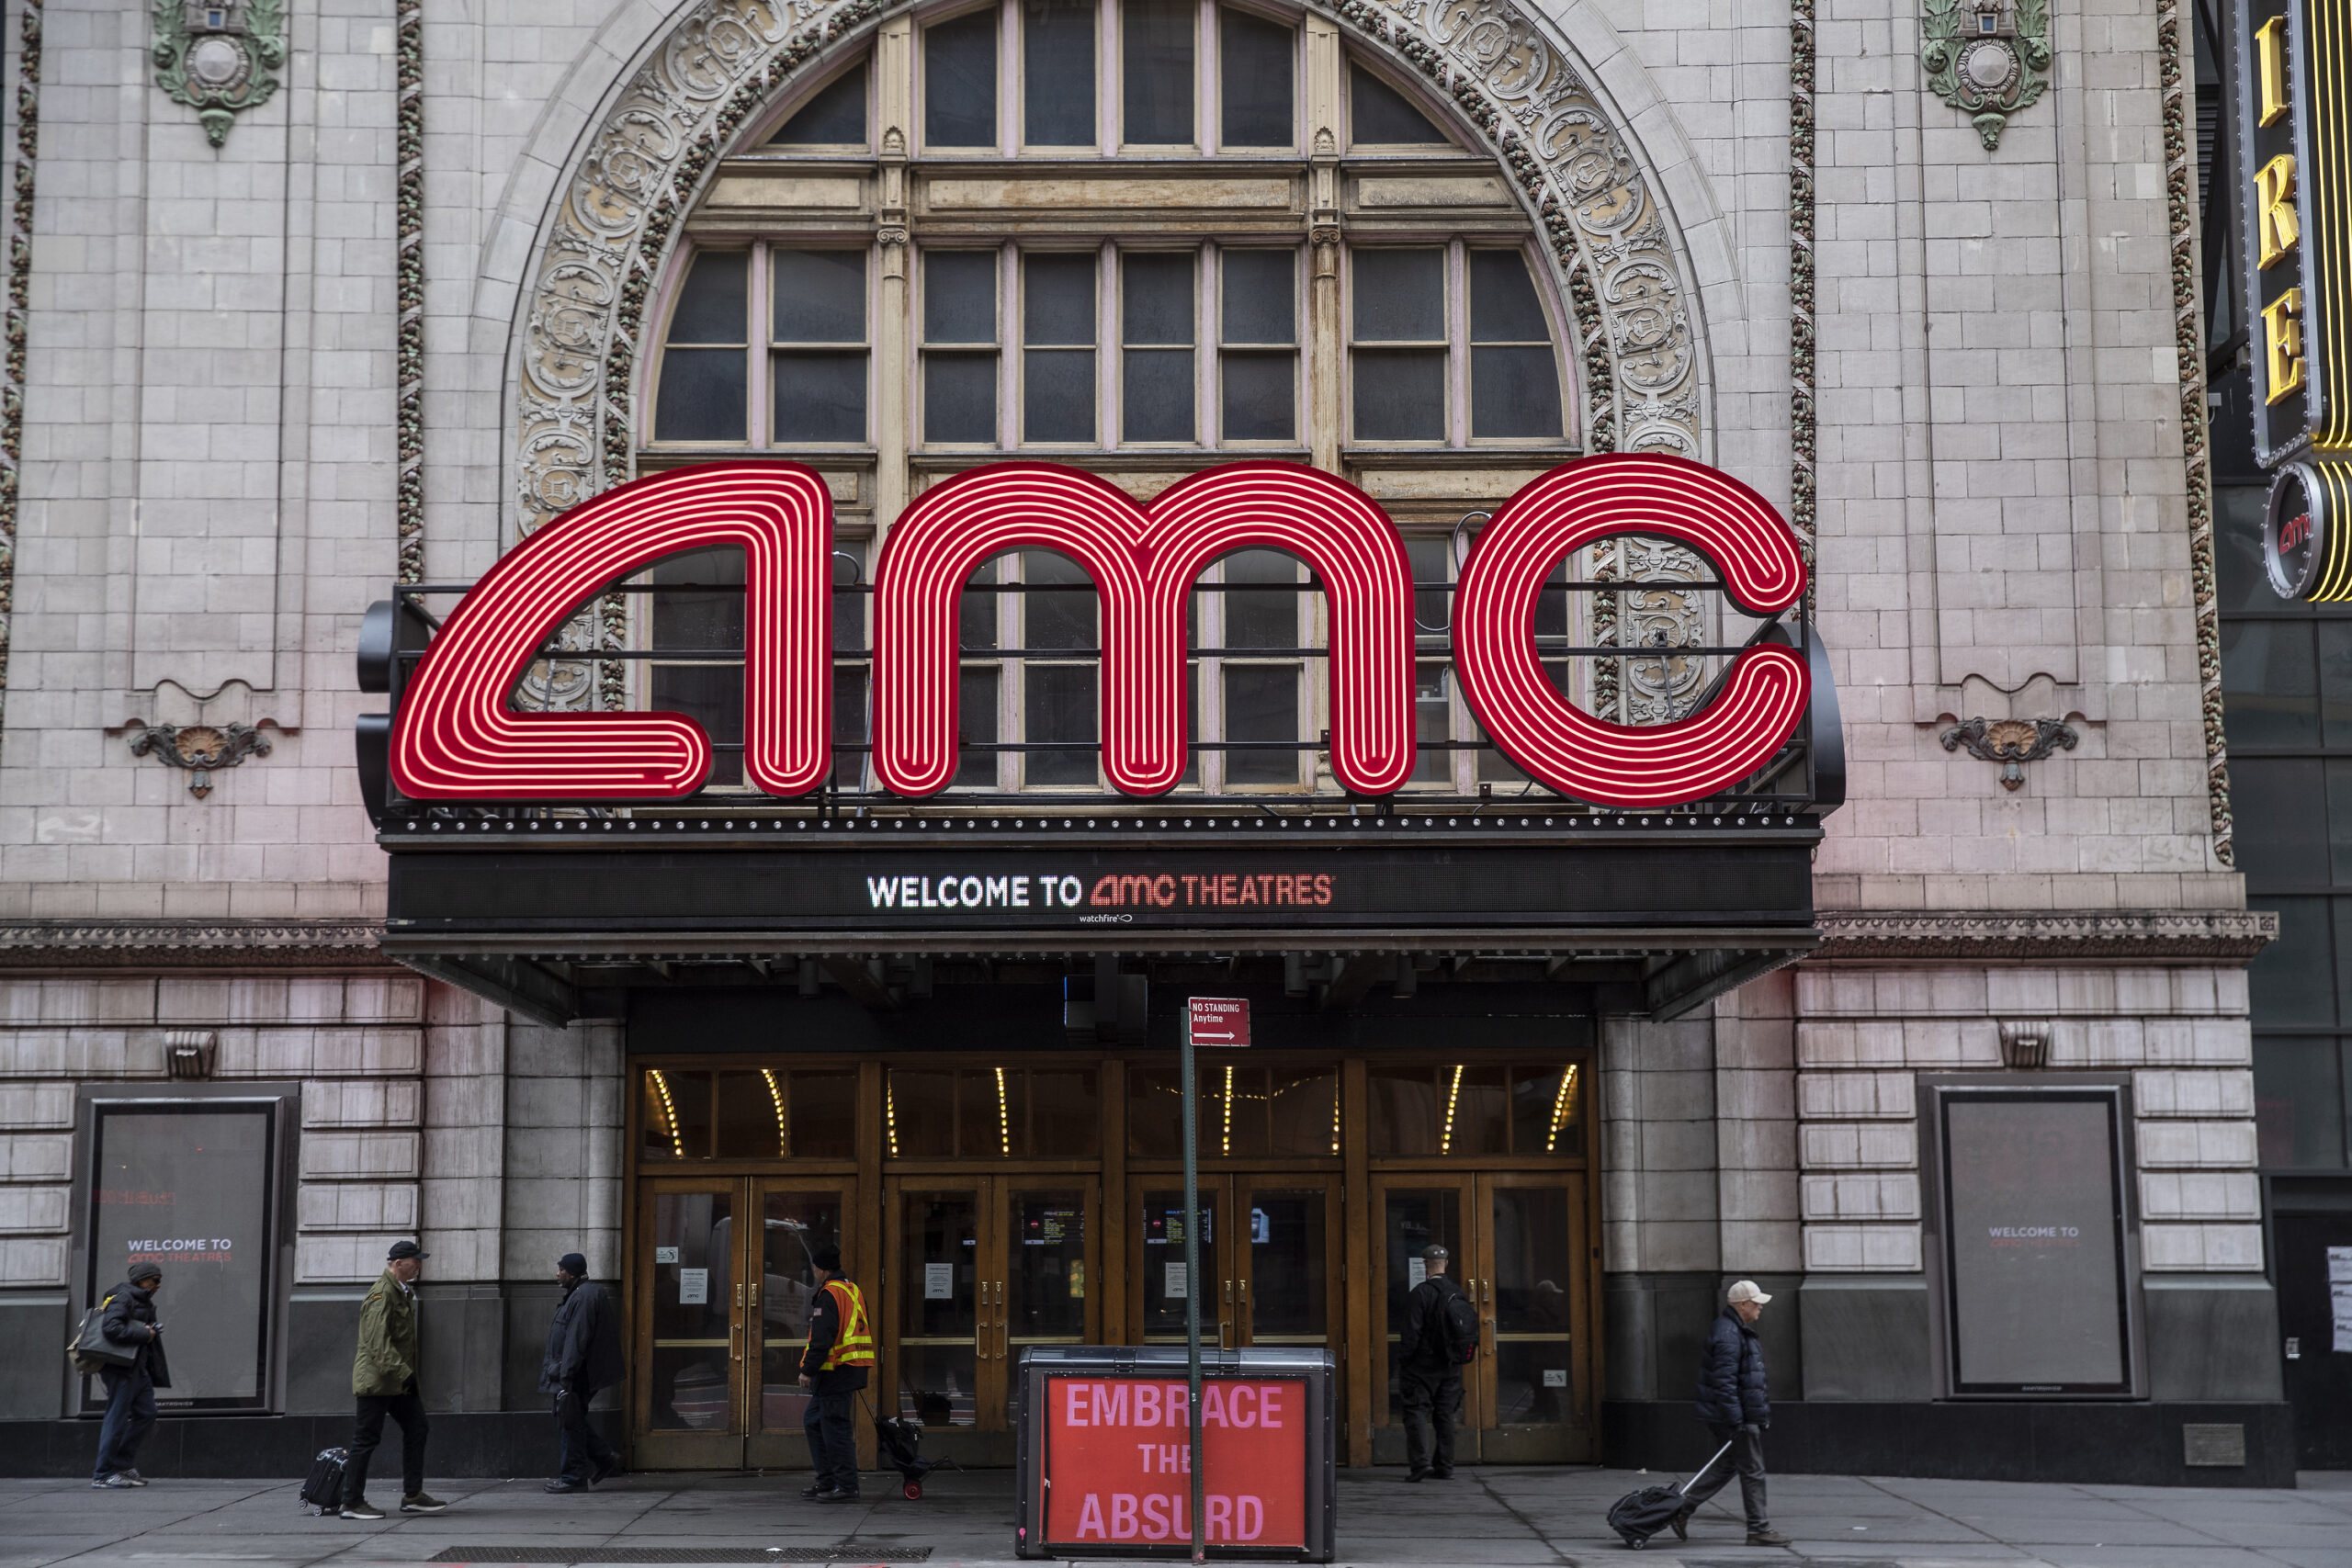 AMC Theaters announces plan to reopen in phases next month